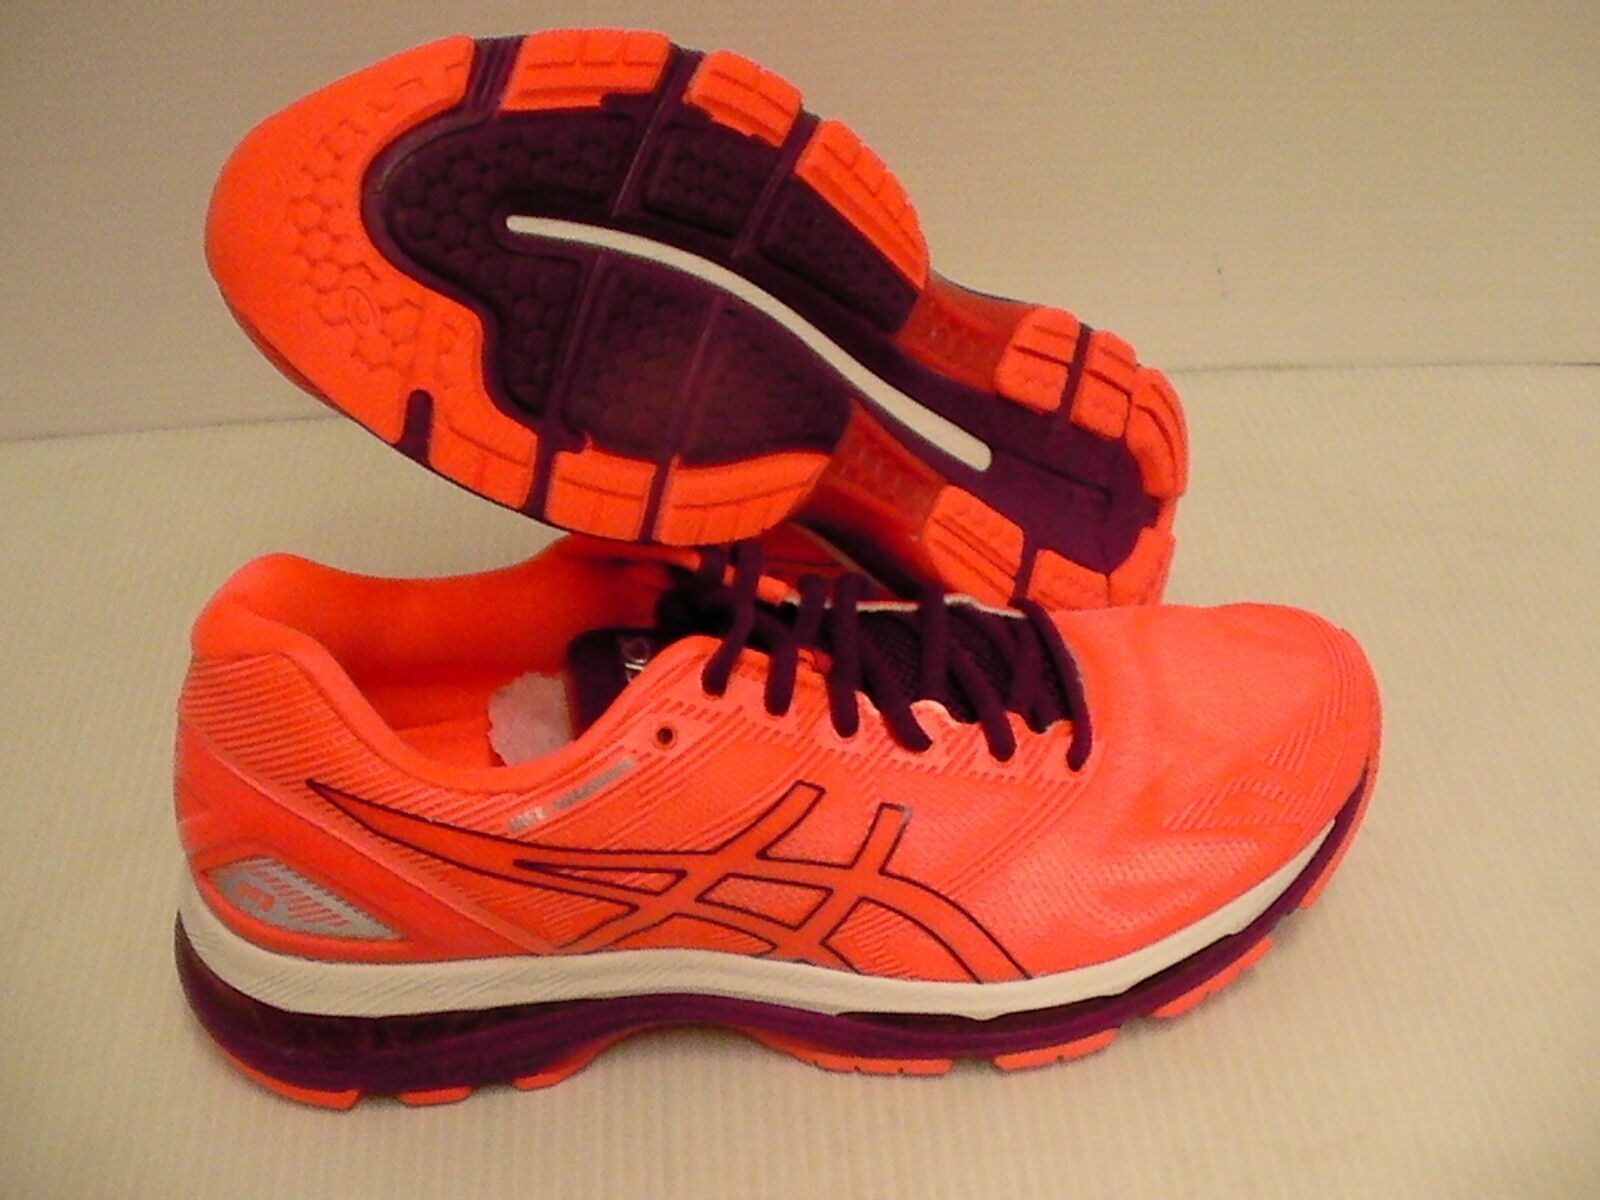 Asics womens gel nimbus 19 running shoes flash coral dark purple white size 10 Cheap and beautiful fashion